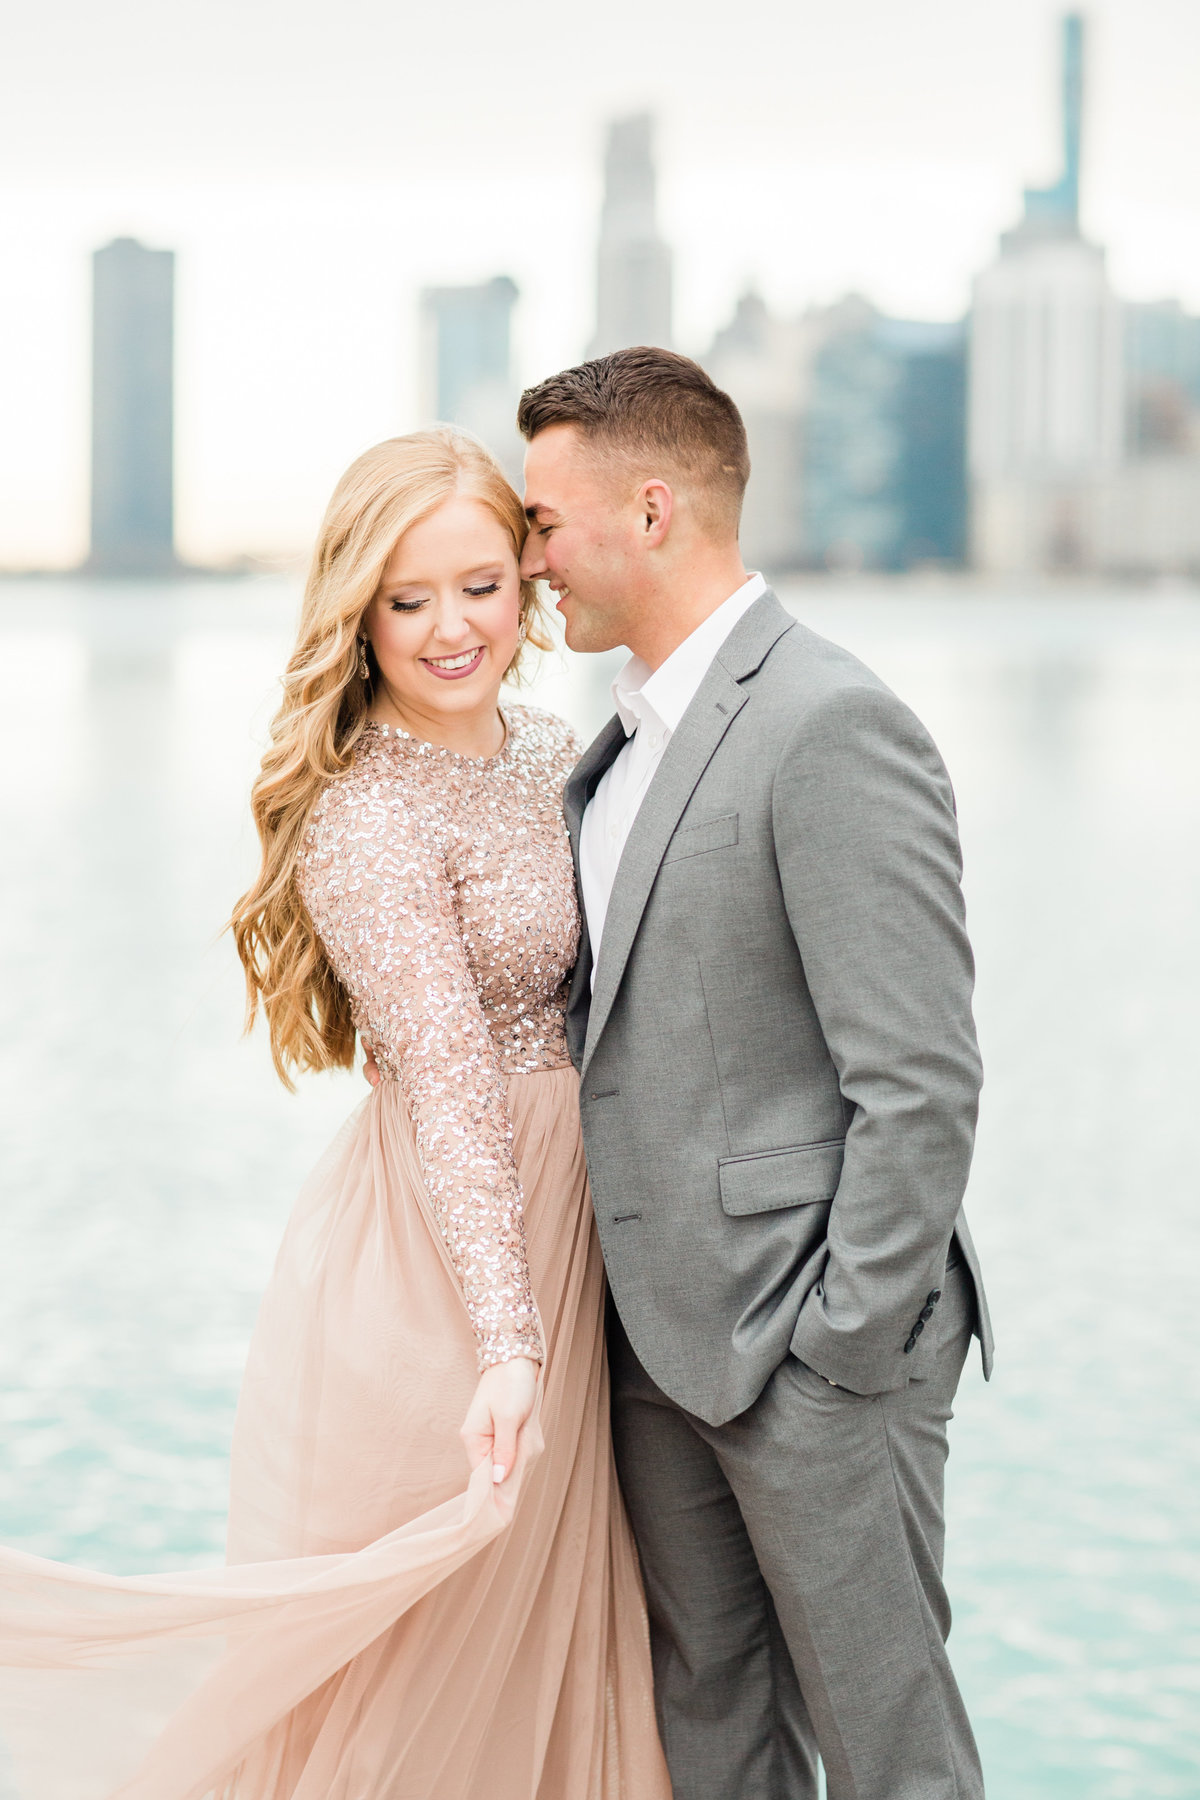 lindsey-taylor-photography-north-avenue-beach-chicago-engagement-photographer10